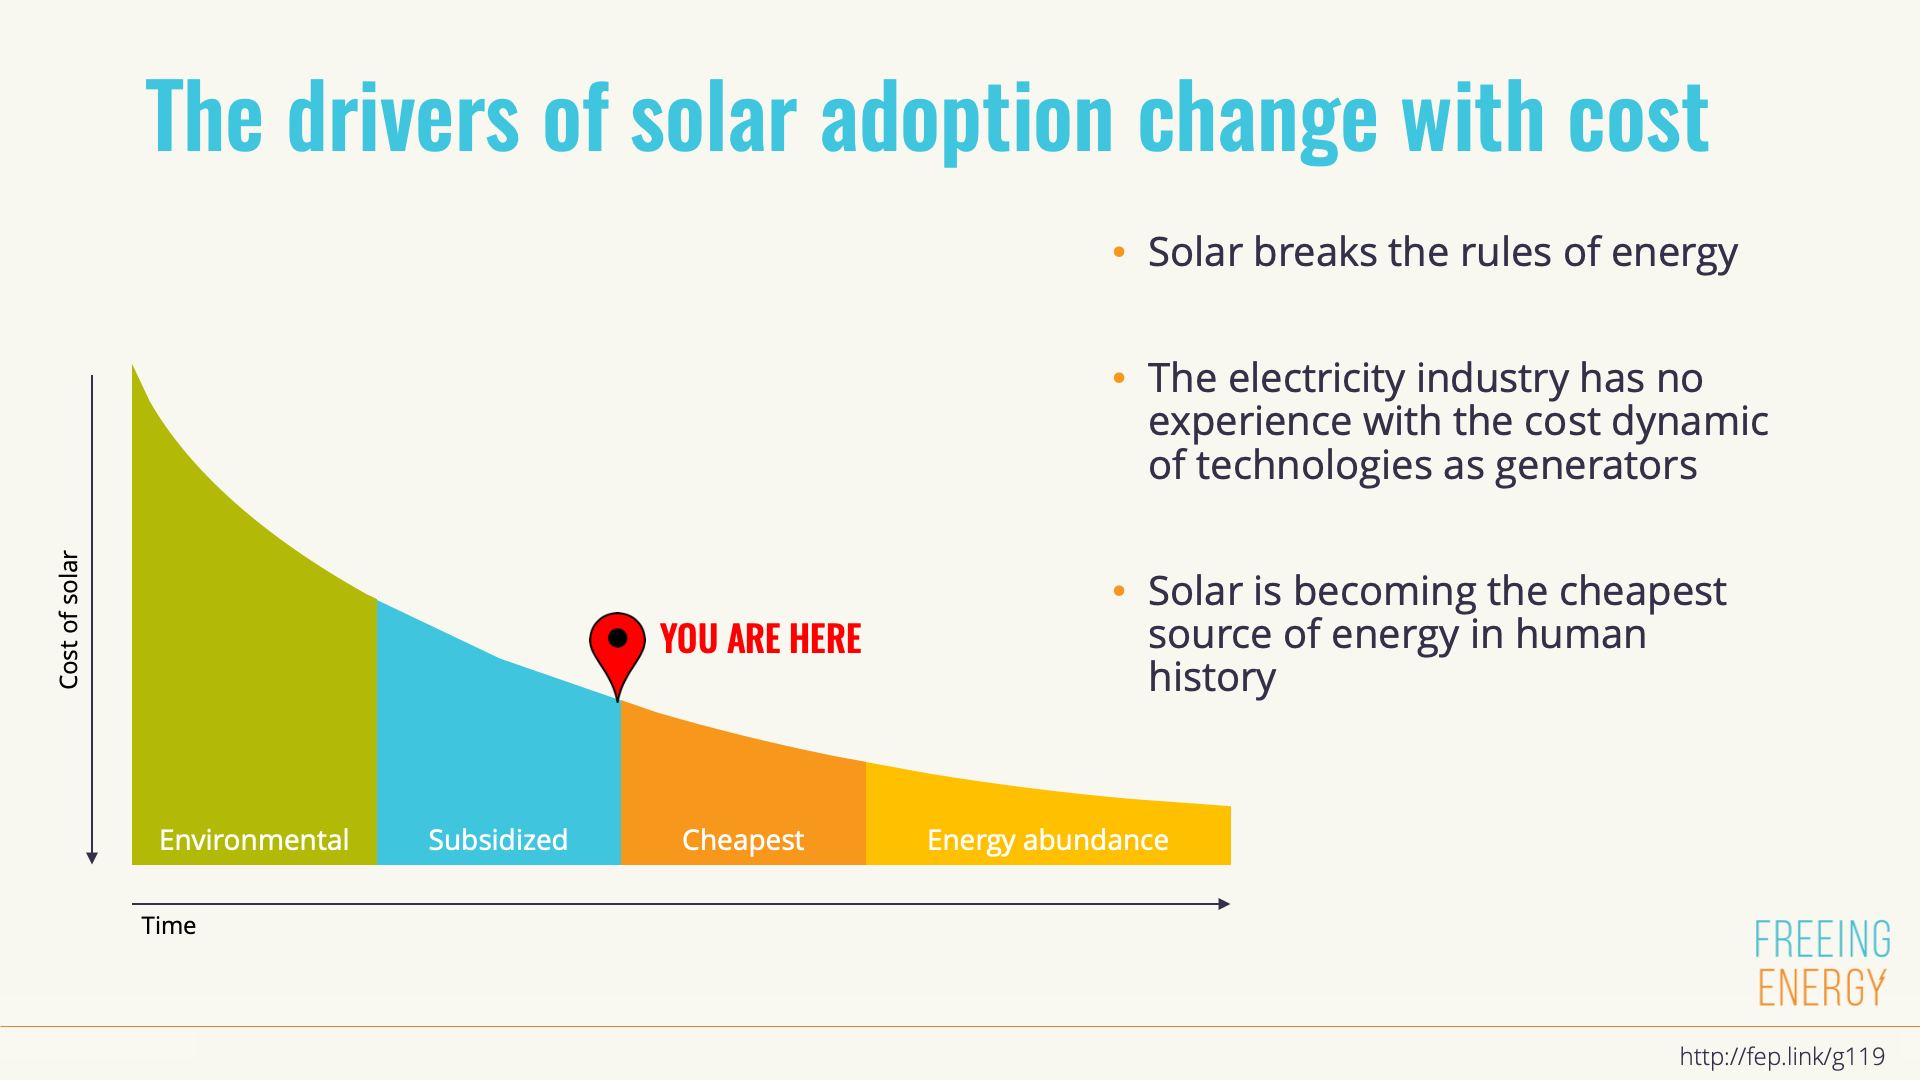 The drivers of solar adoption are changing with the costs